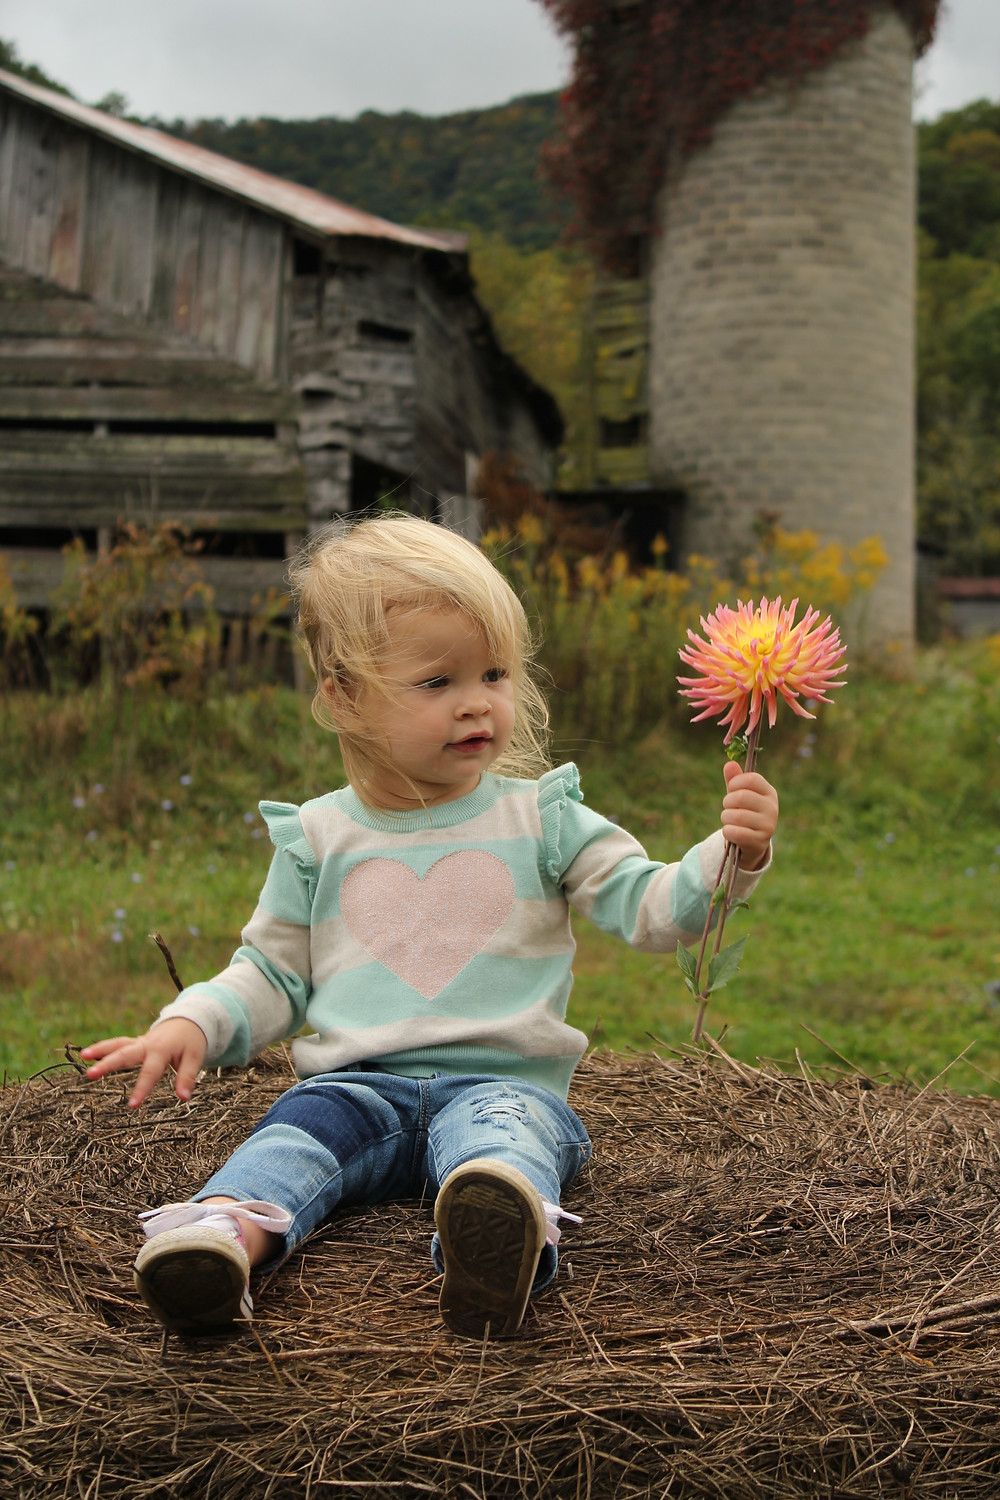 A little girl sits on a bale of hay and looks at a flower at Lady Luck Flower Farm in Asheville, NC.